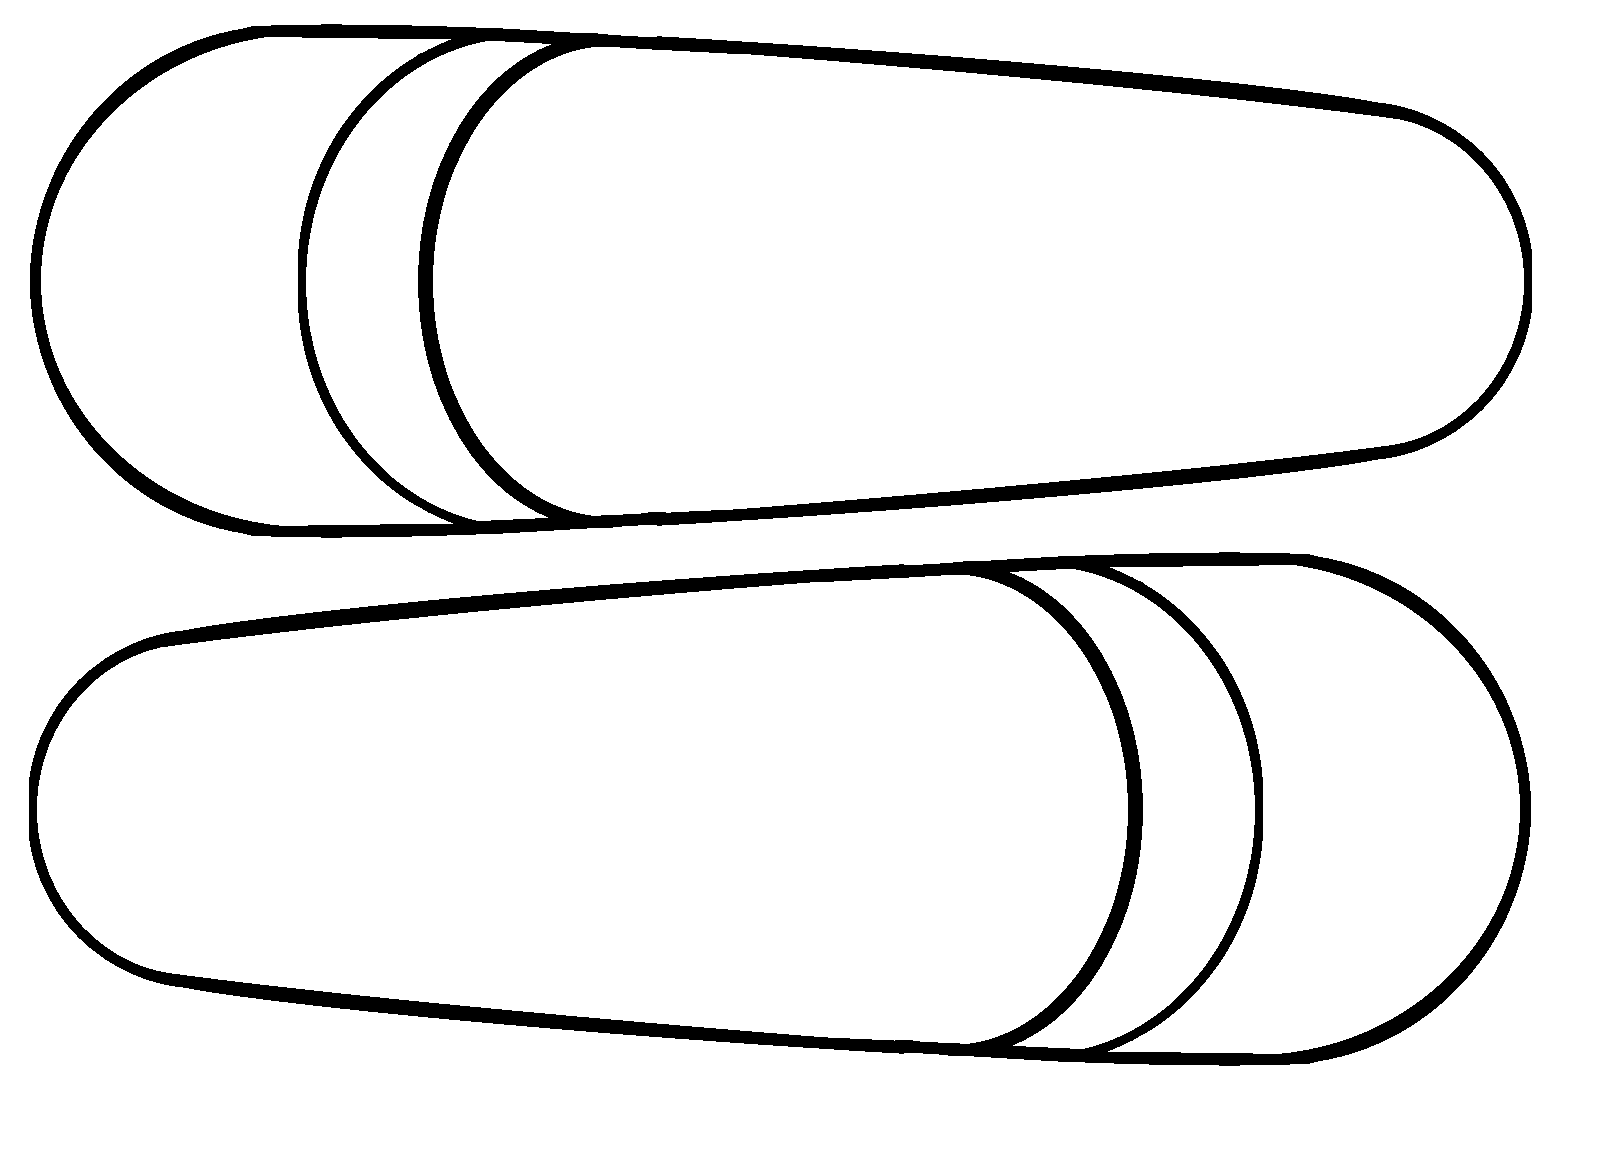 Free Feather Outline Cliparts, Download Free Clip Art, Free.